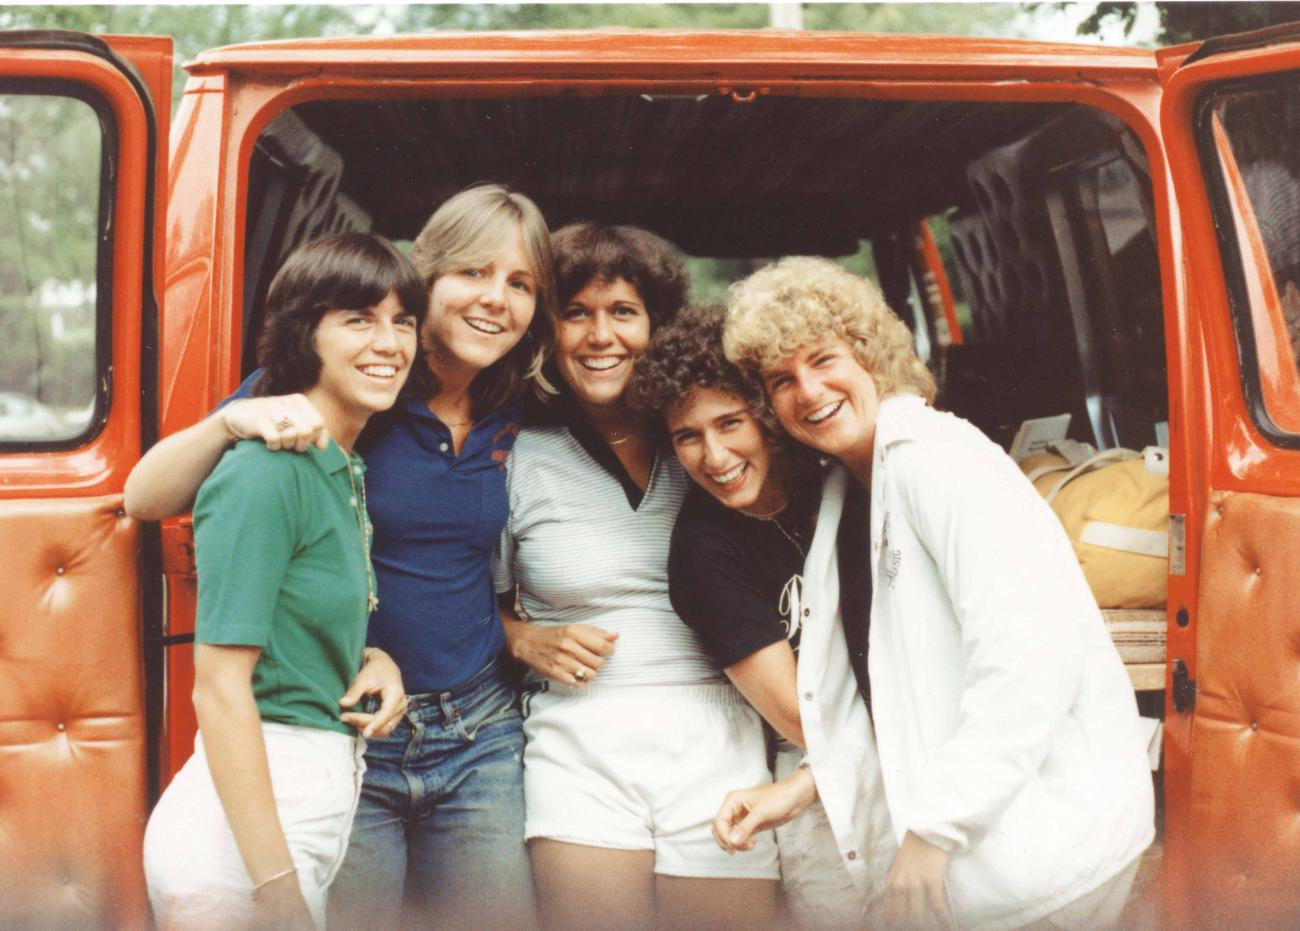 Mary Jane De Souza, from left, Emily Huntington, Judy Howe, Lisa Sabbatino, and Joan Quinlan embark on their cross-country trip.